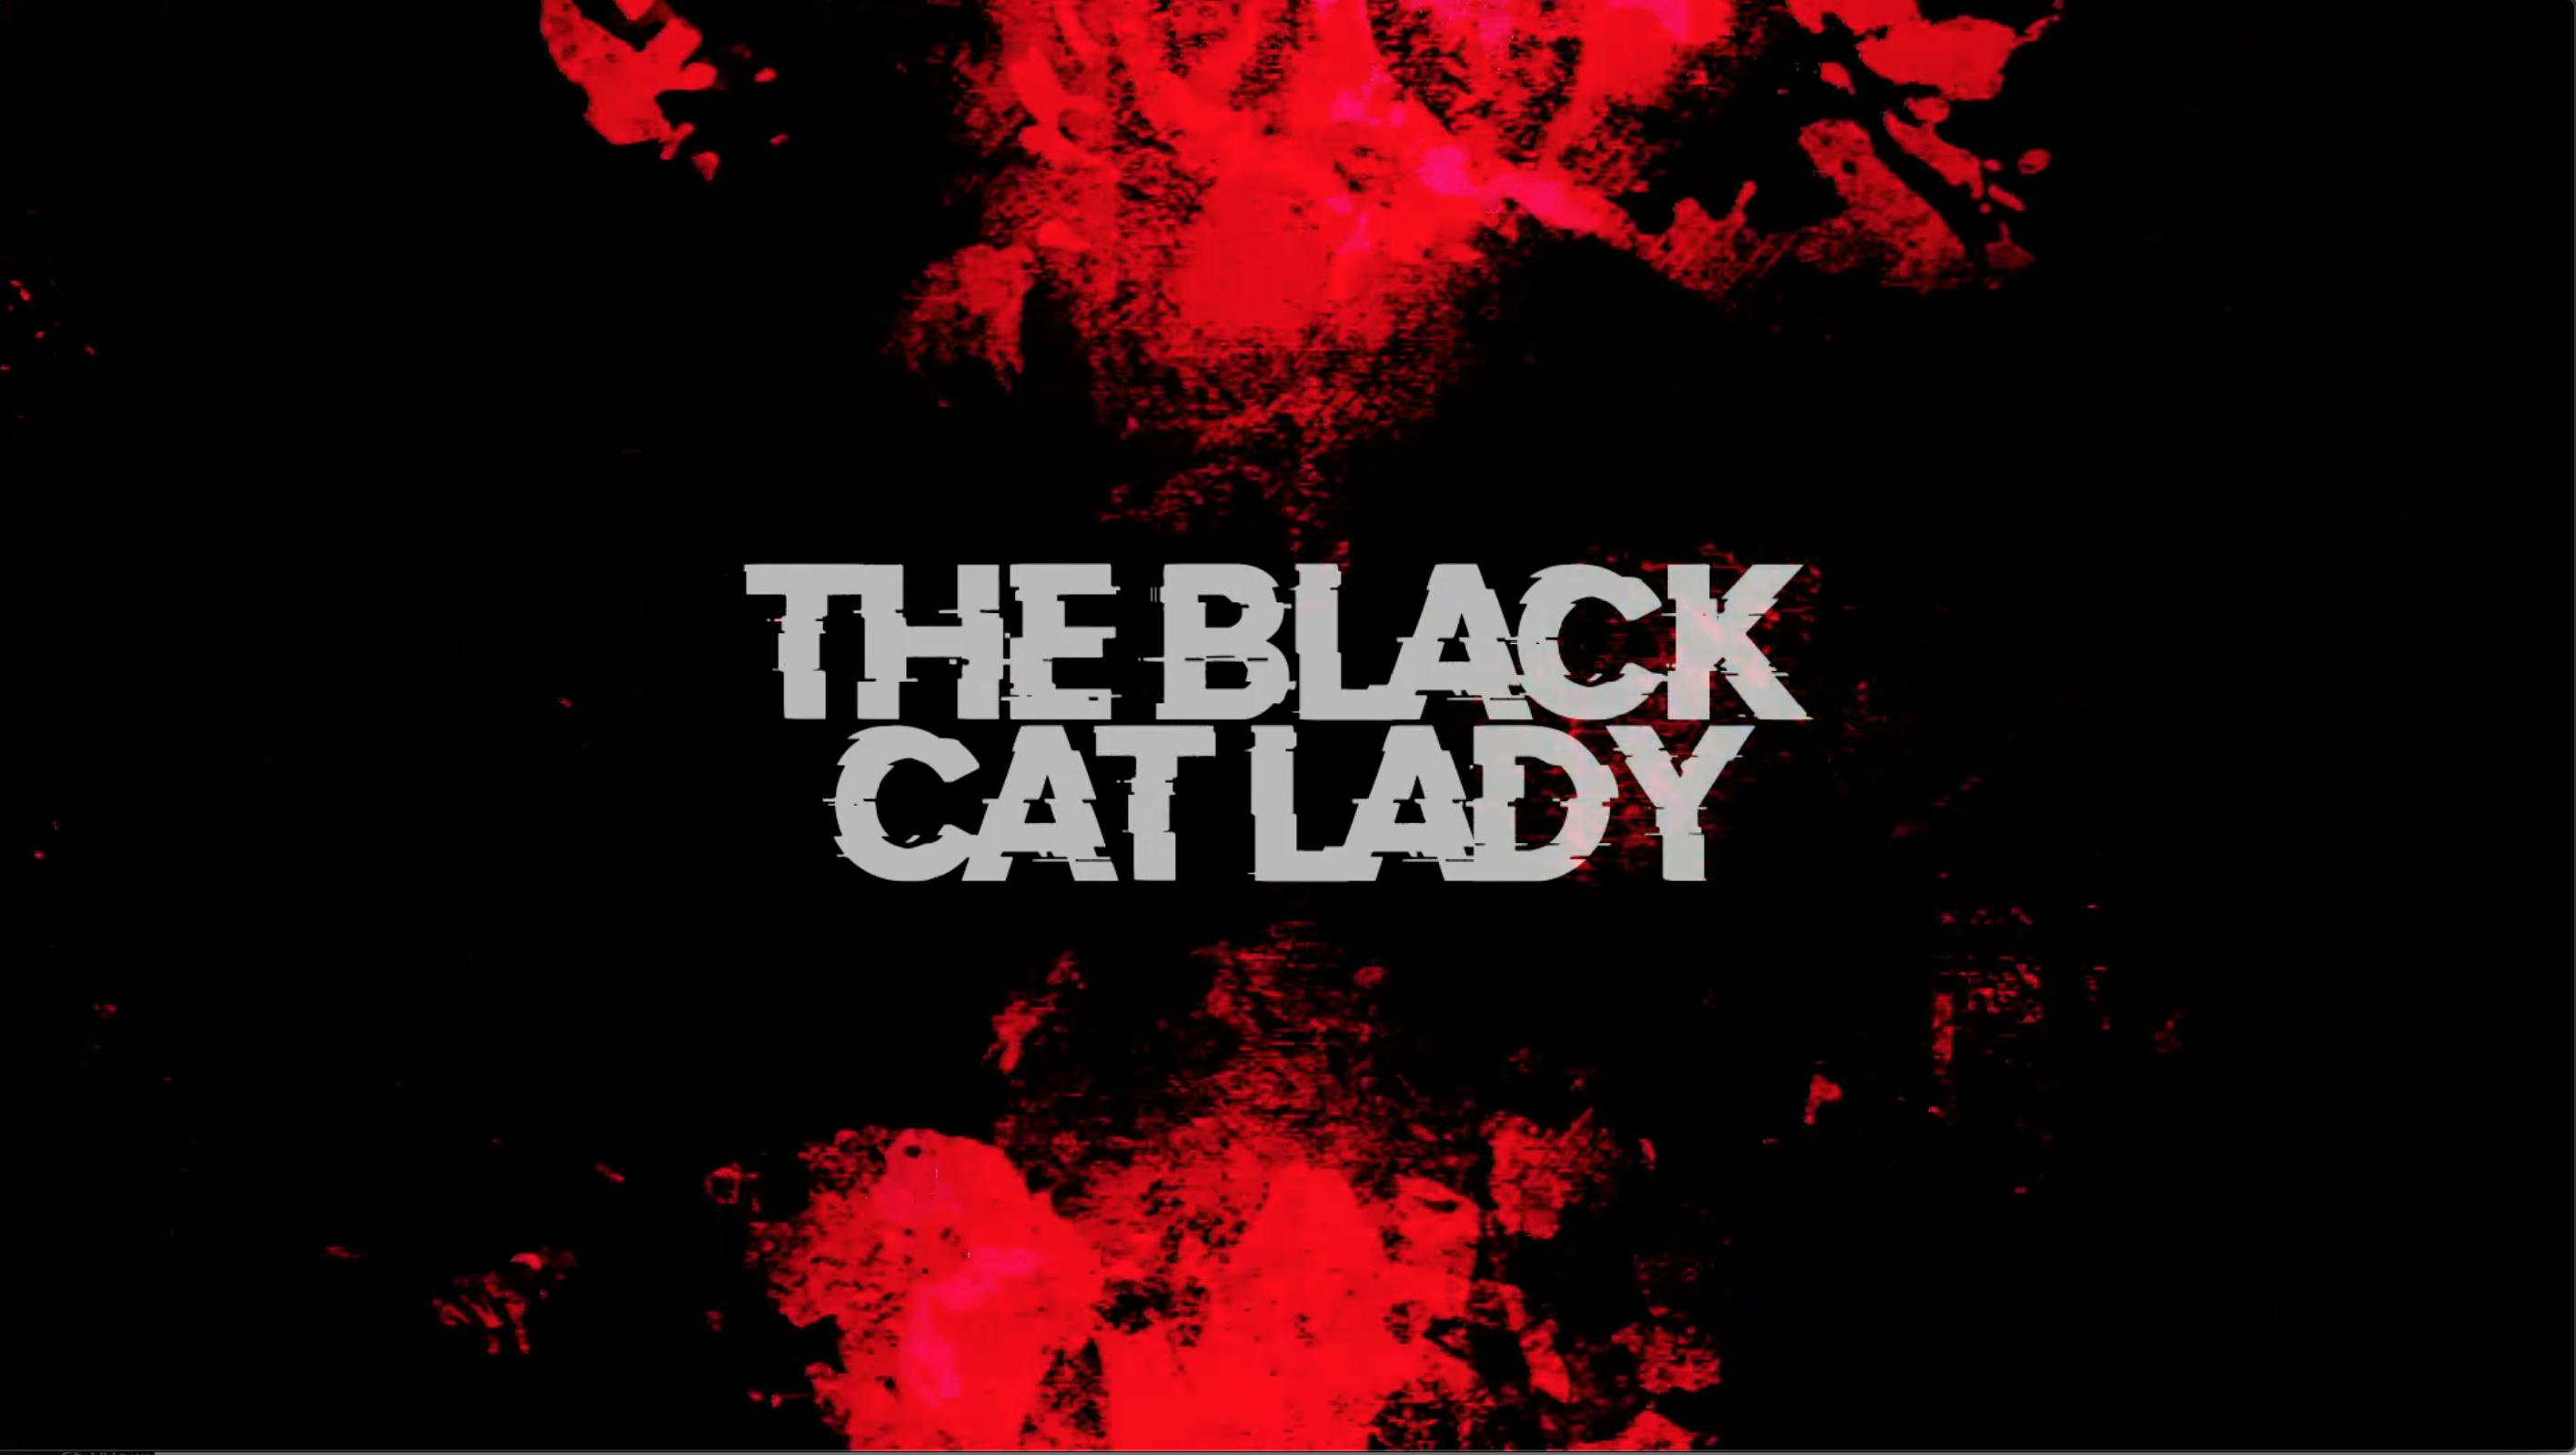 iGo Live - EP6 - THE BLACK CAT LADY